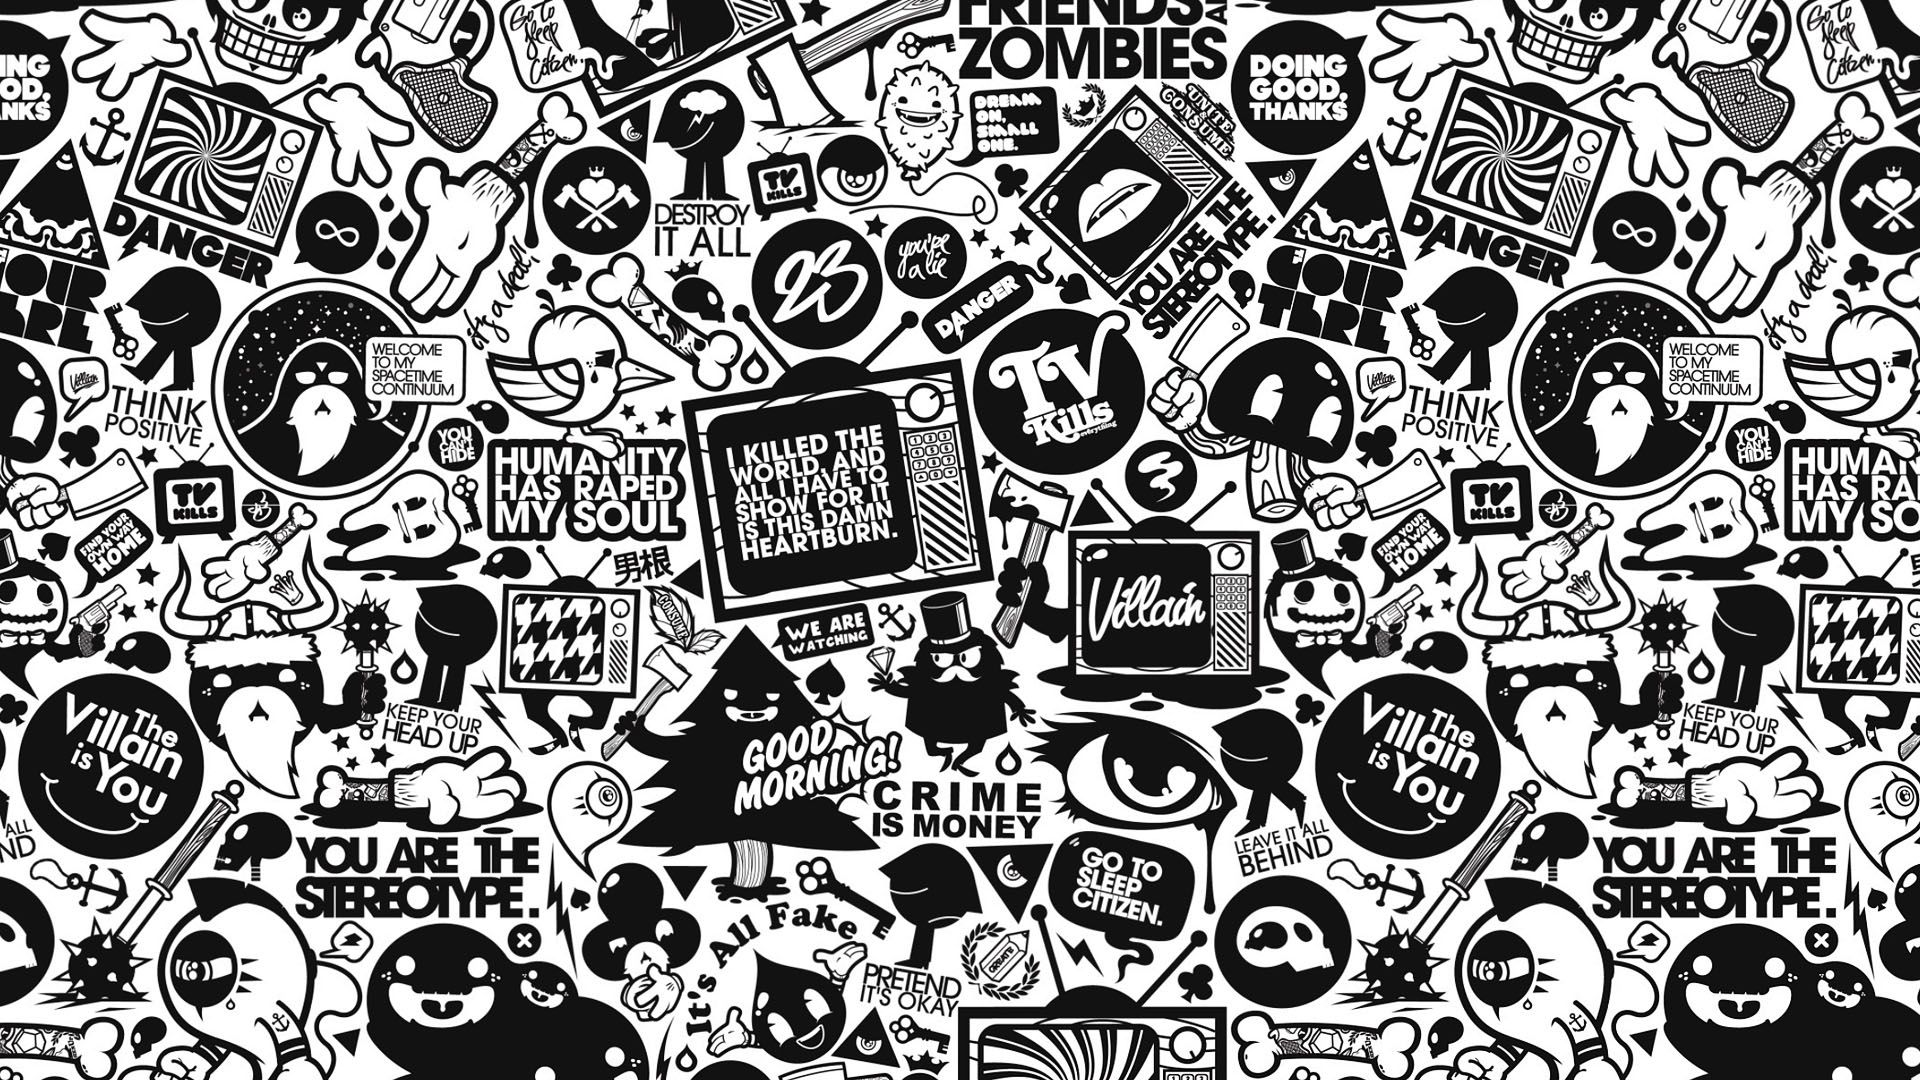 Download black and white collage 1920x1080 hd wallpaper in the download black and white collage 1920x1080 hd wallpaper publicscrutiny Choice Image